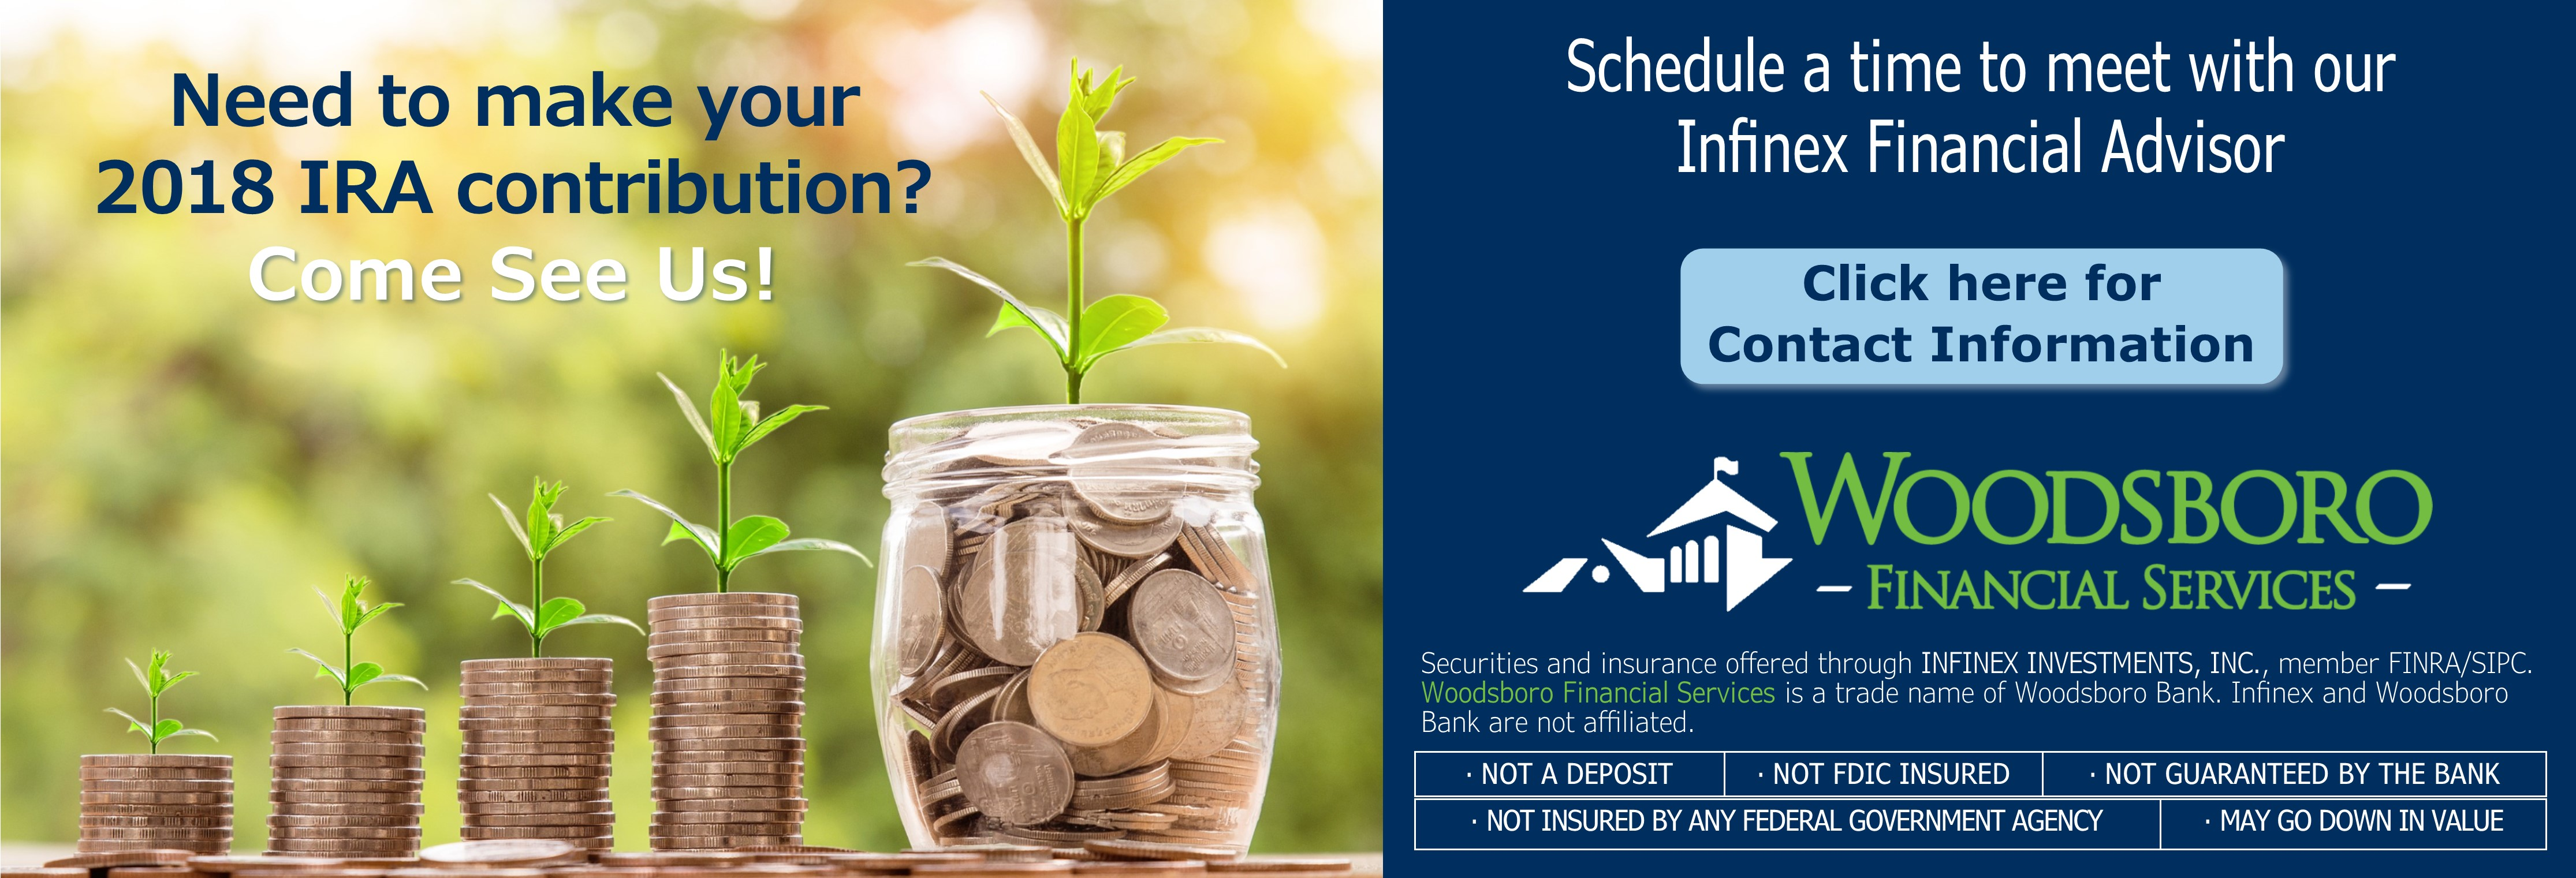 Need to make your 2018 IRA contribution? Come see Us! Schedule a time to meet with our Infinex Financial Advisor. Click her for Contact Information and disclosures.